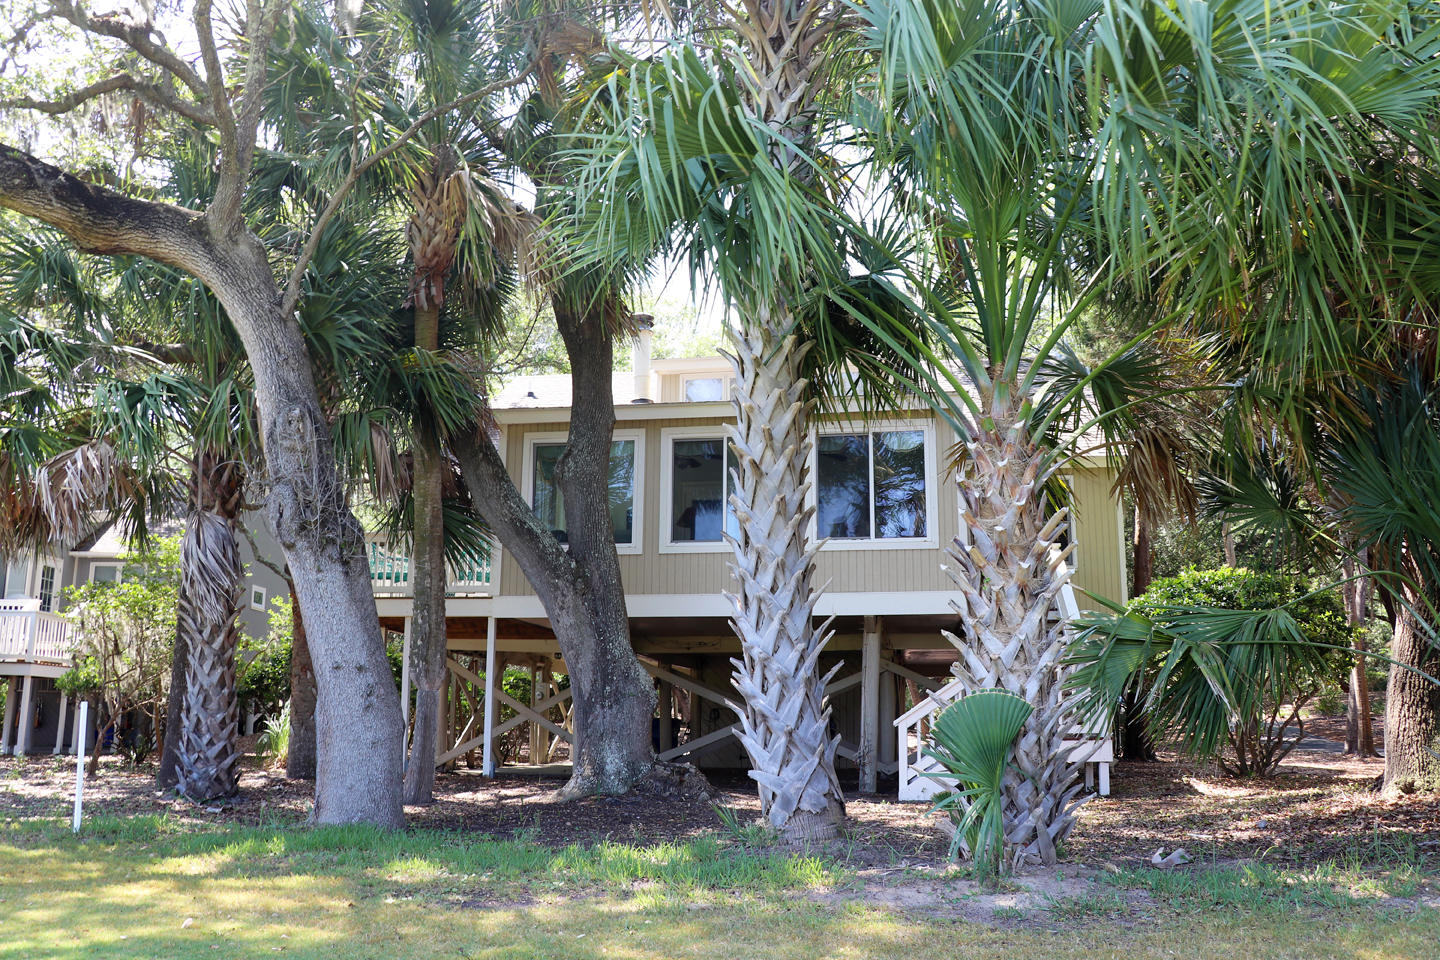 Tarpon Pond Cottages Homes For Sale - 546 Cobby Creek, Seabrook Island, SC - 0